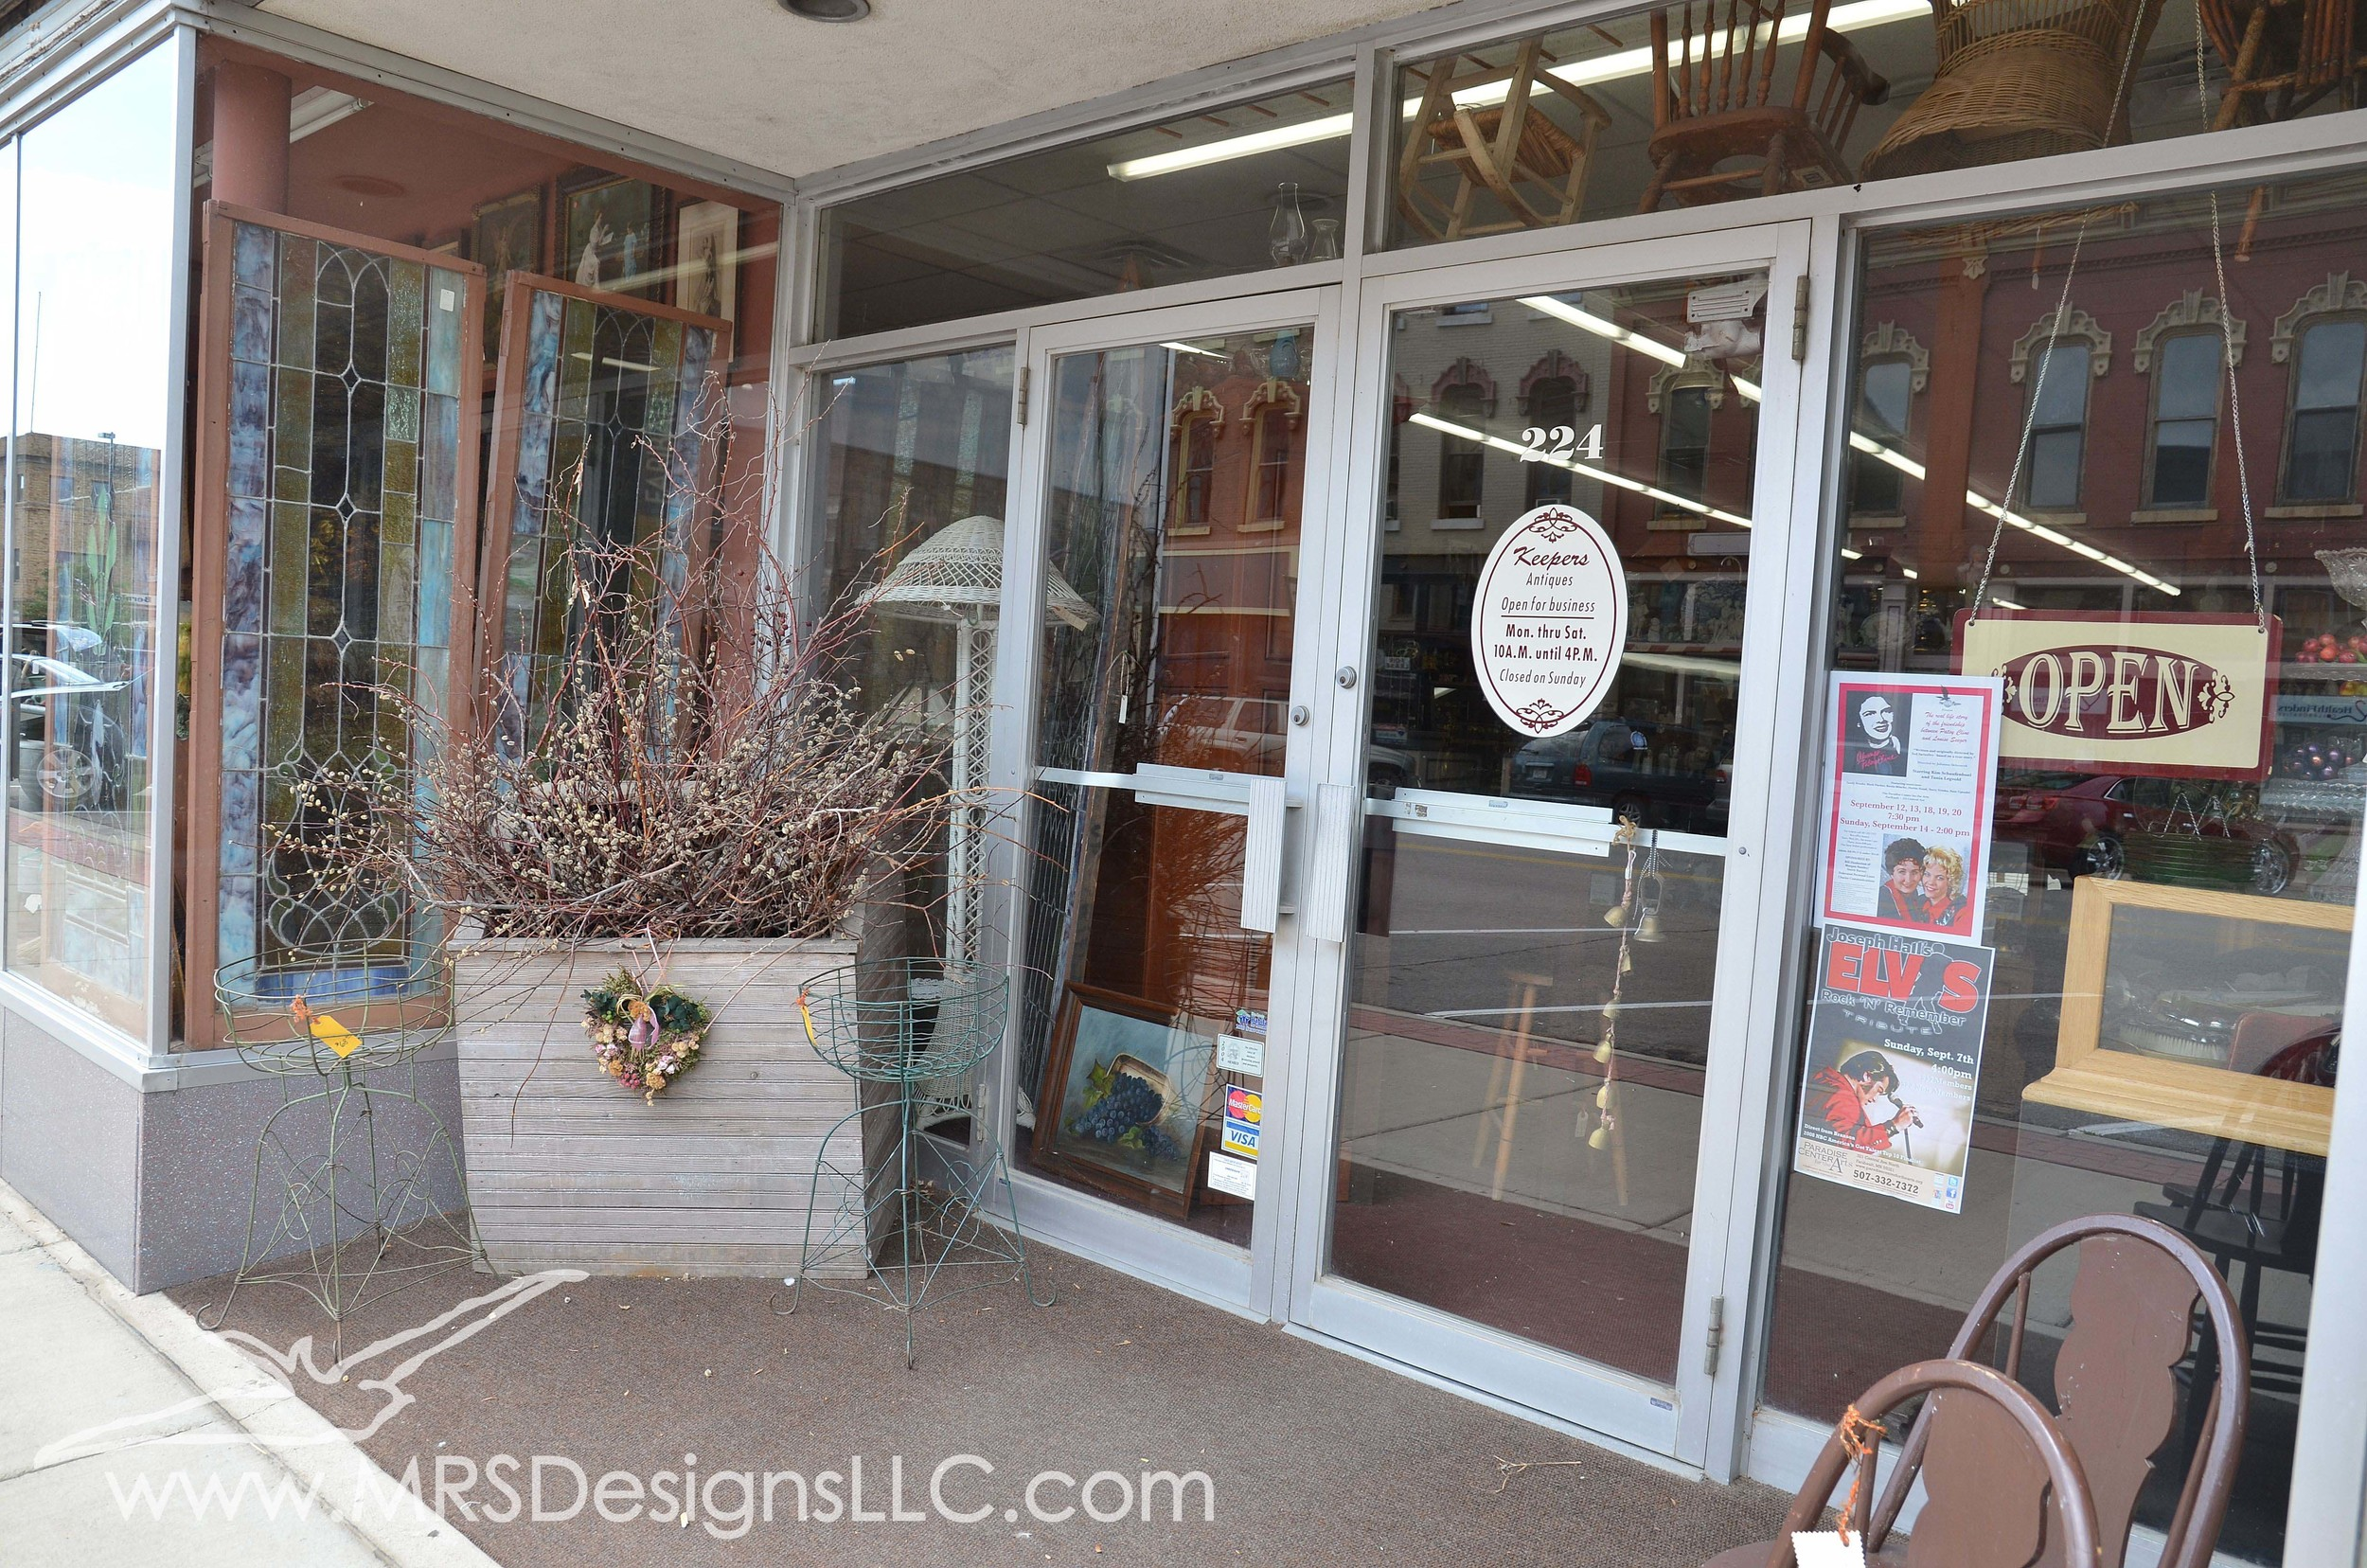 MRS Designs Blog - Keepers Antique Store in Faribault, MN